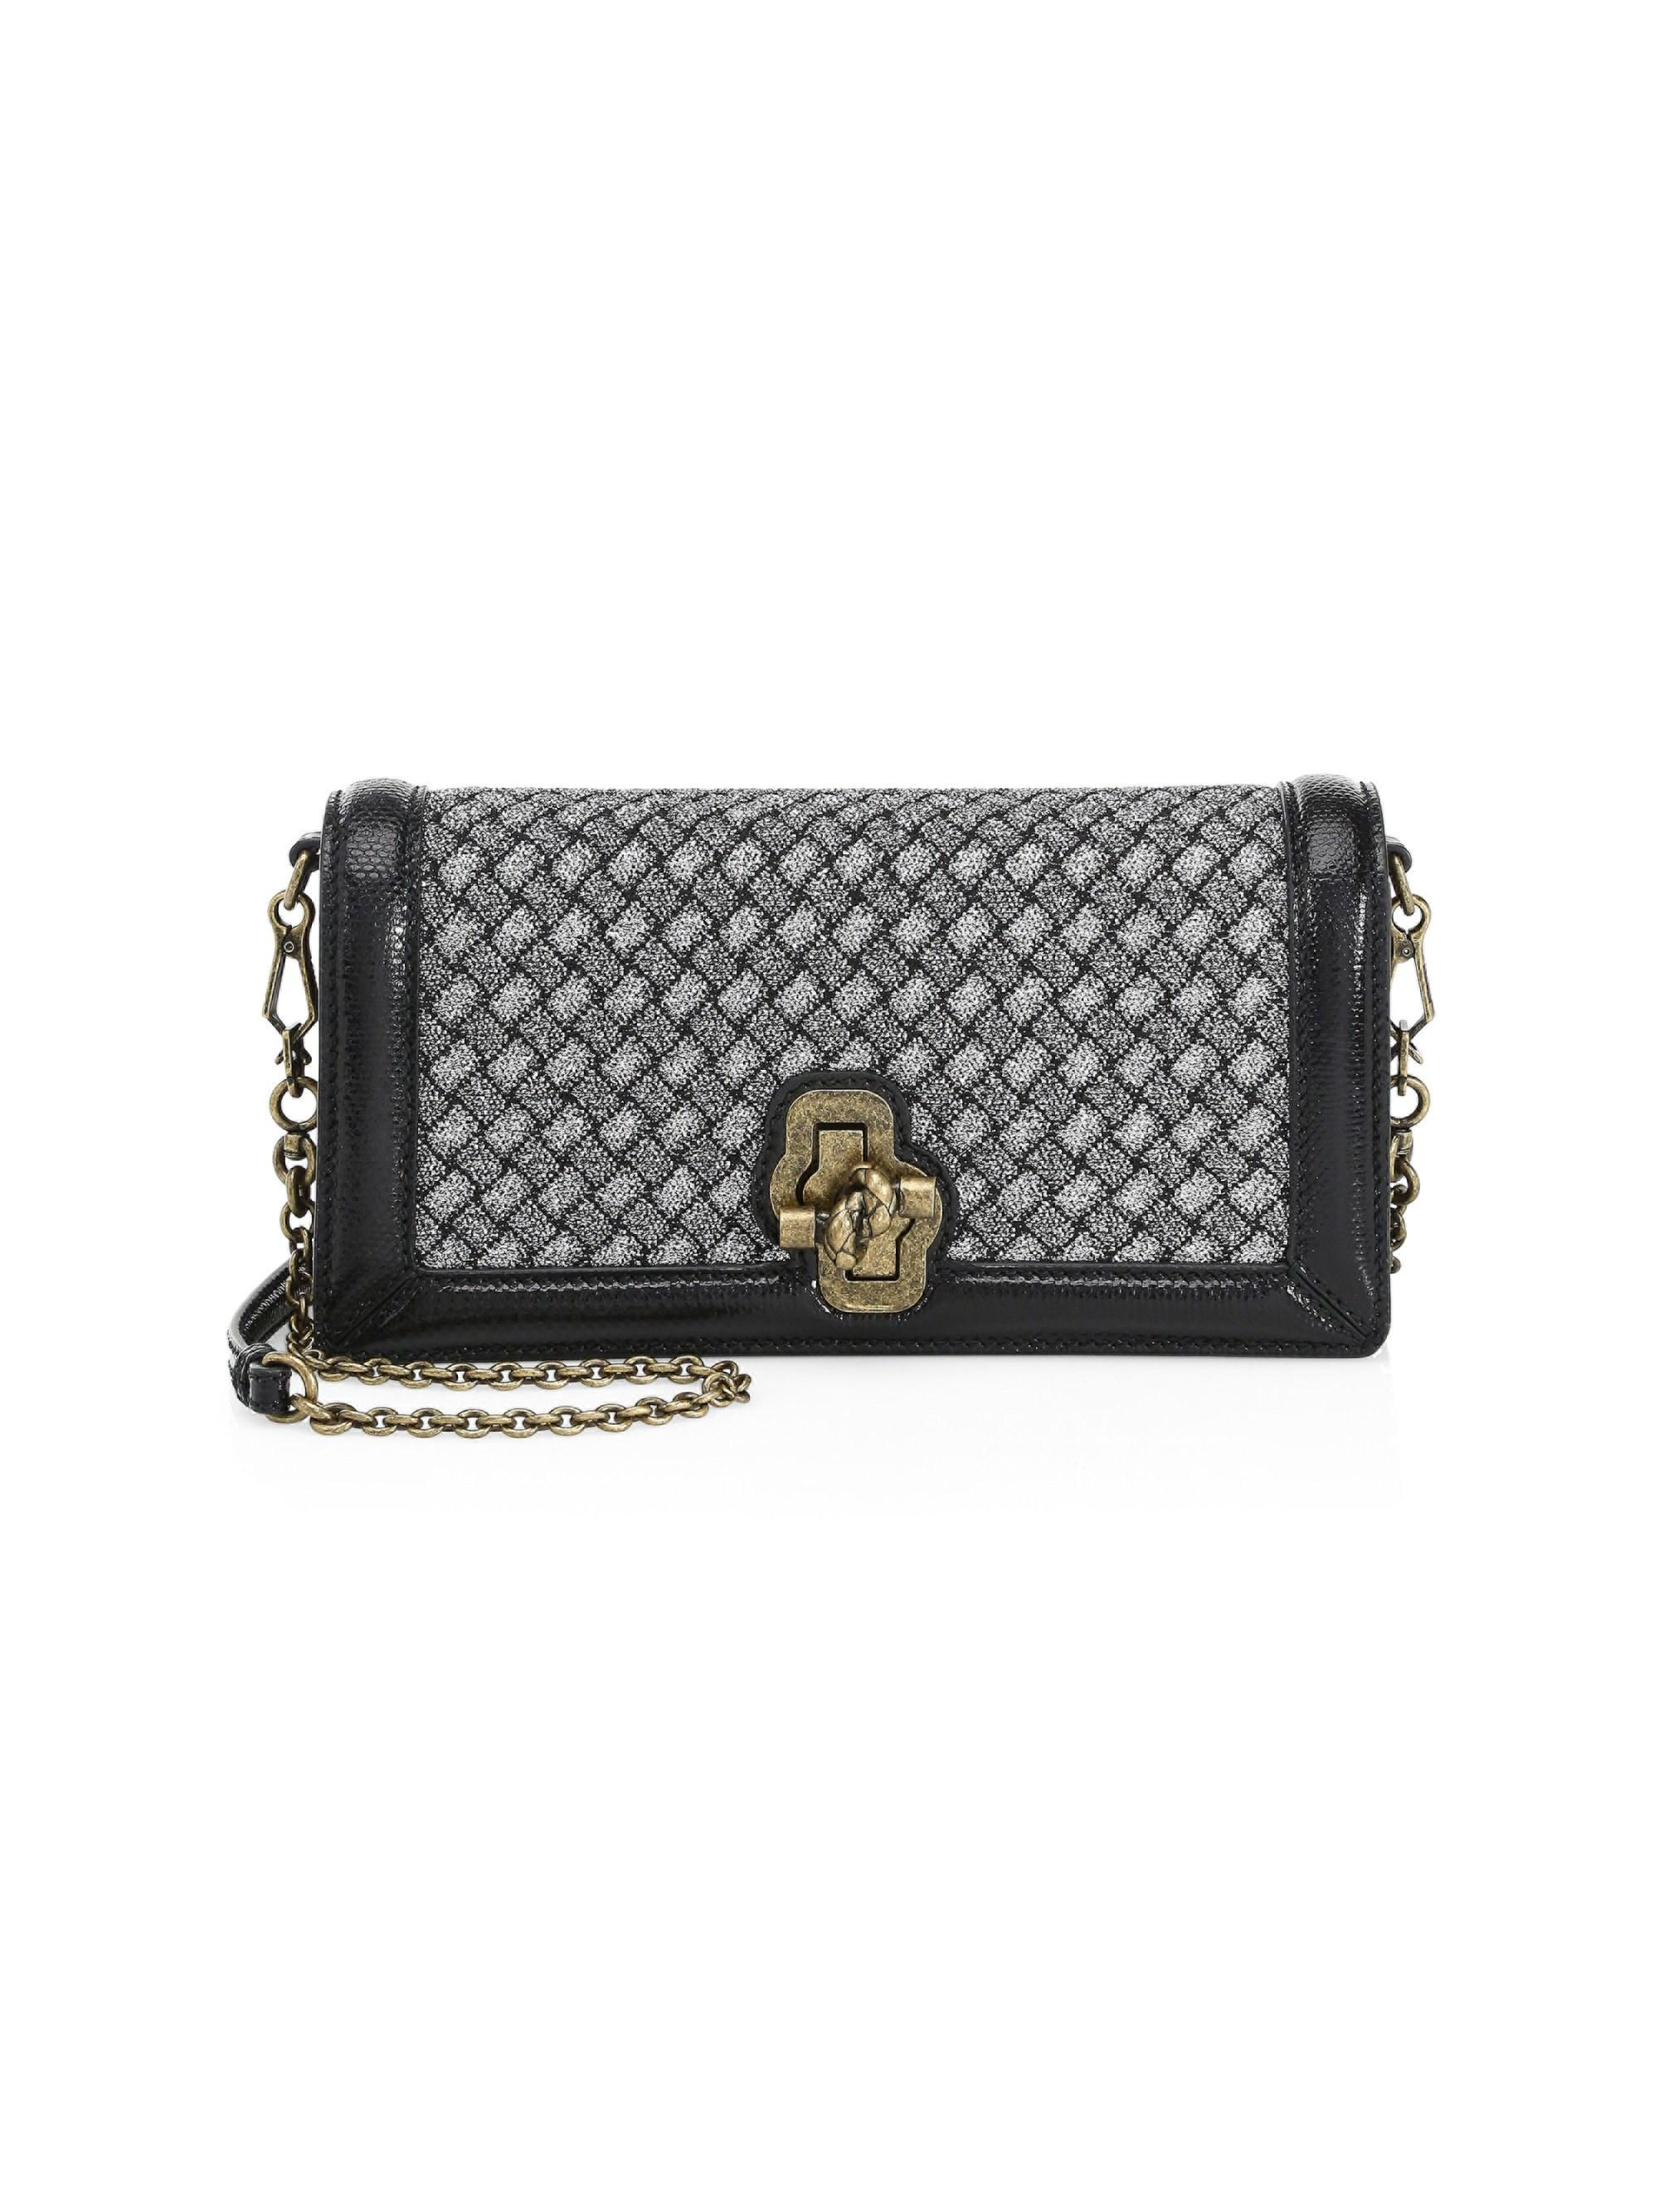 5f4c4348520b9 Bottega Veneta Knot Woven Clutch in Metallic - Lyst